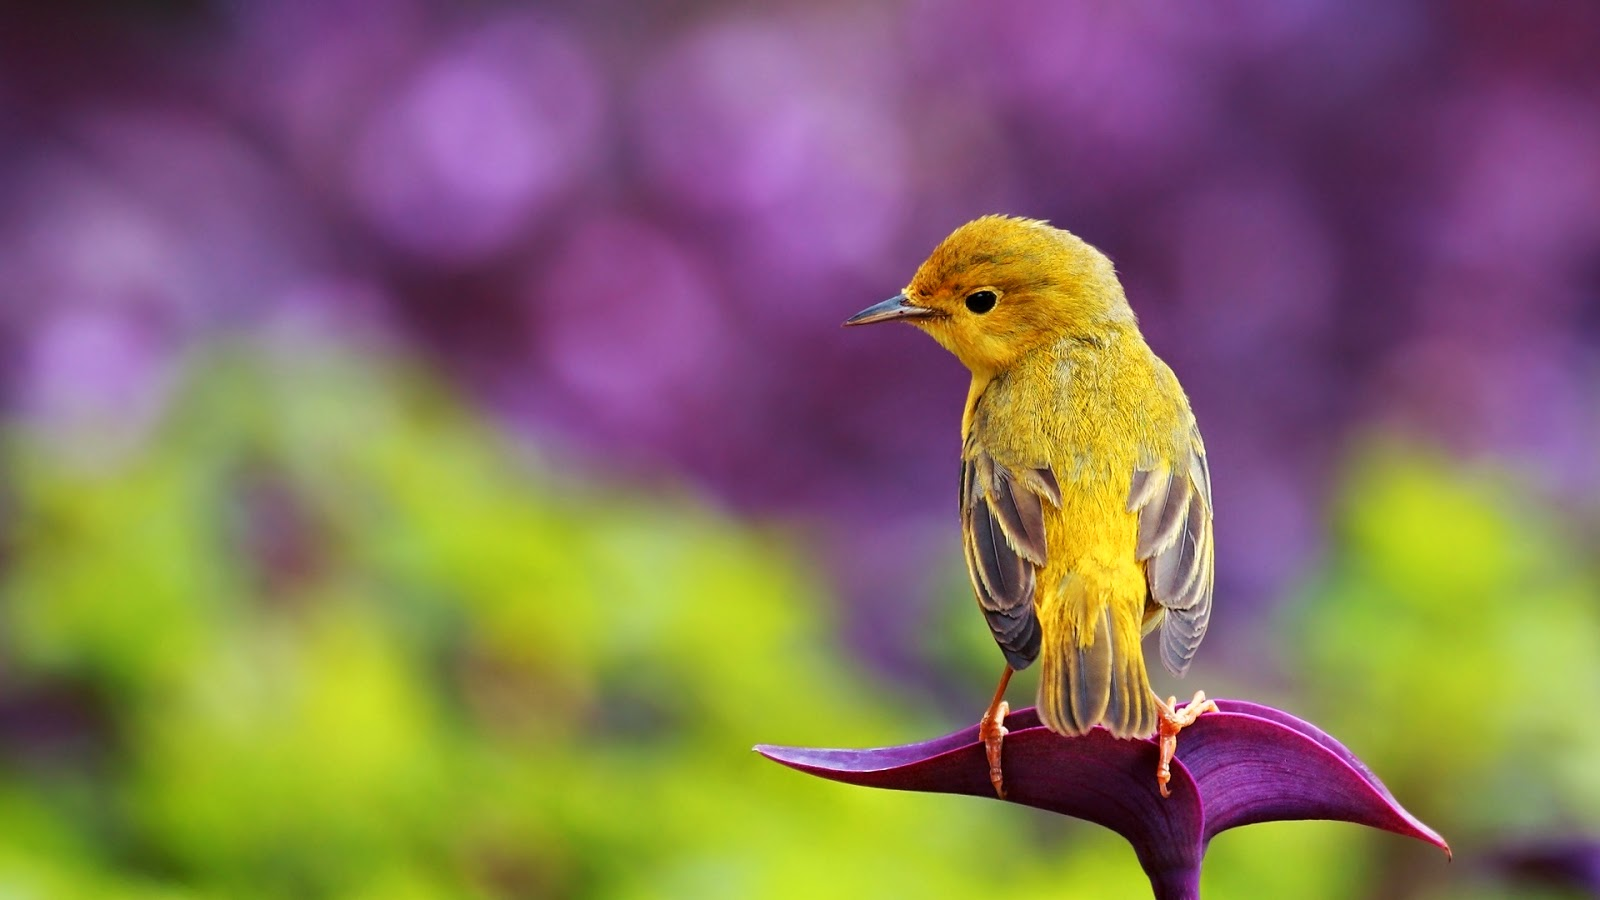 Beautiful-HD-Birds-HD-1080P-wallpaper-wpc9002704